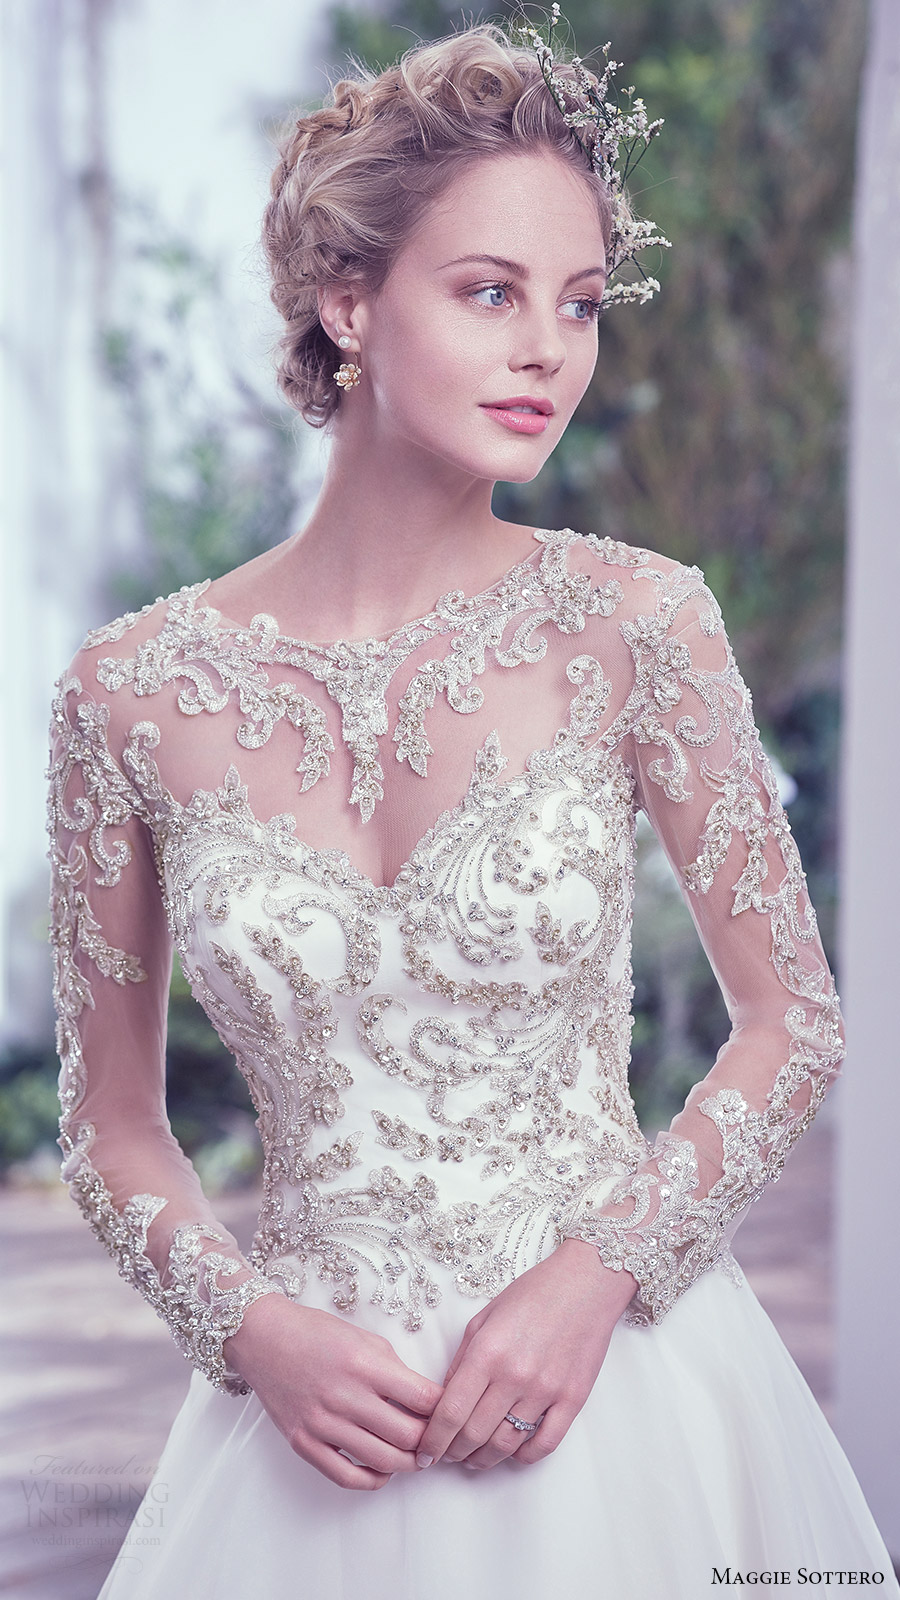 maggie sottero bridal fall 2016 illusion long sleeves sweetheart jewel neck ball gown wedding dress (lorenza) zfv embellished bodice romantic